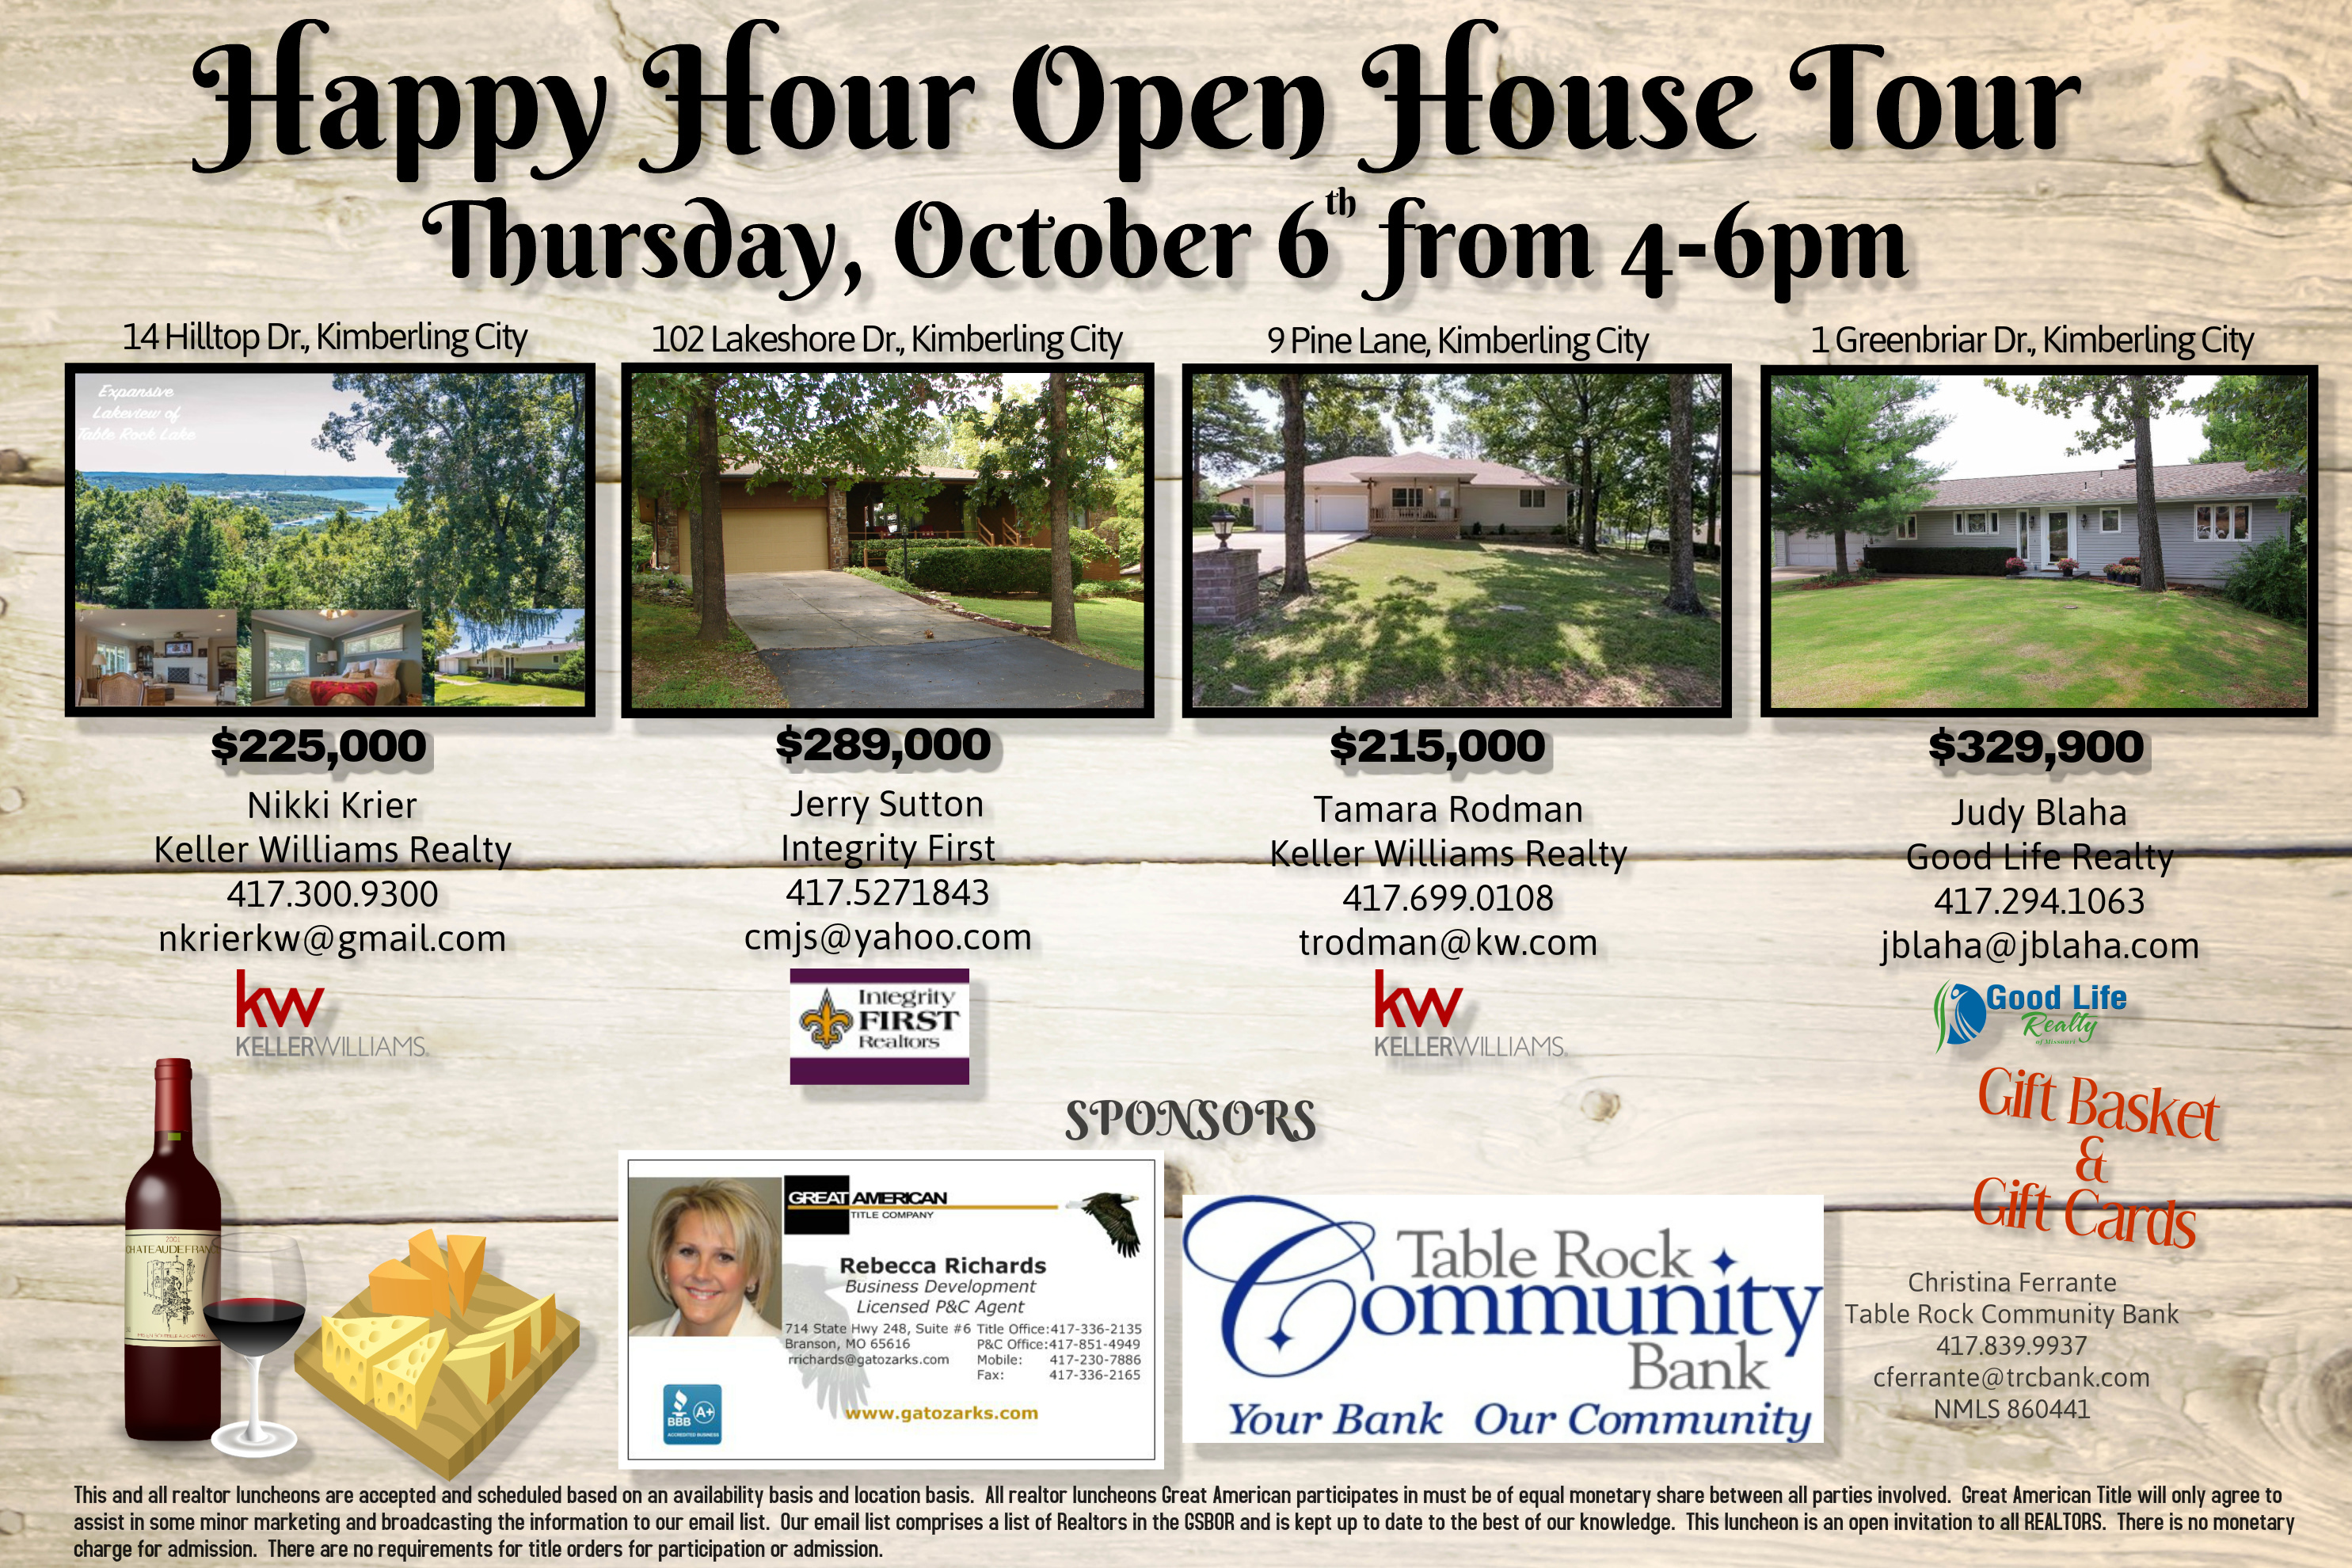 Happy Hour Open House Tour – Great American Title pany